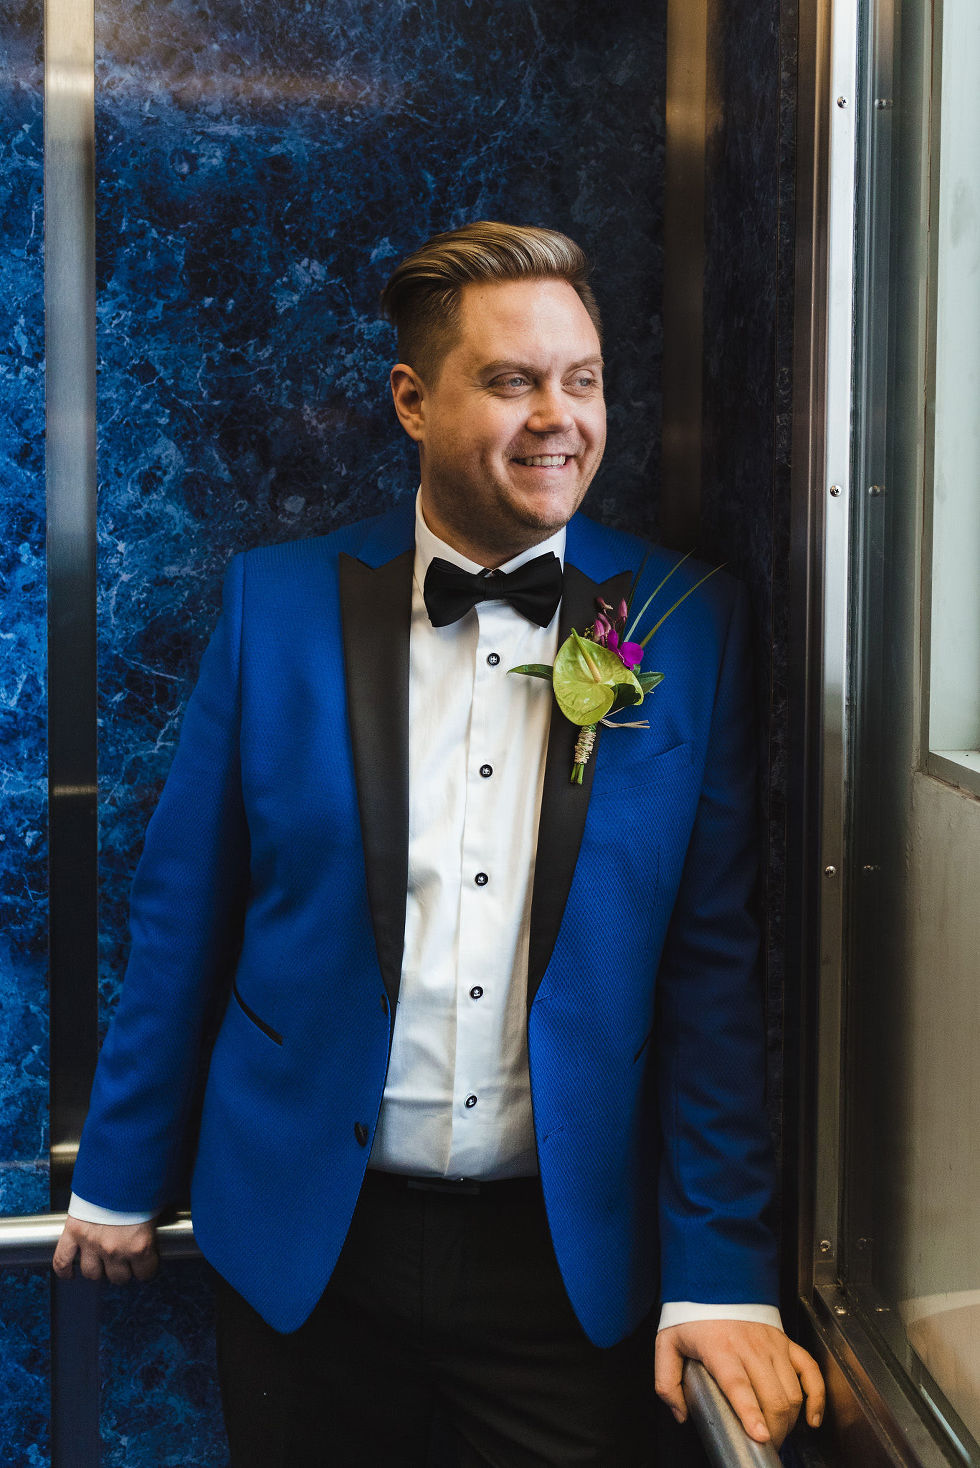 groom in a bright blue suit stands in front of a blue marble wall at the Hilton hotel in Niagara Falls before his wedding